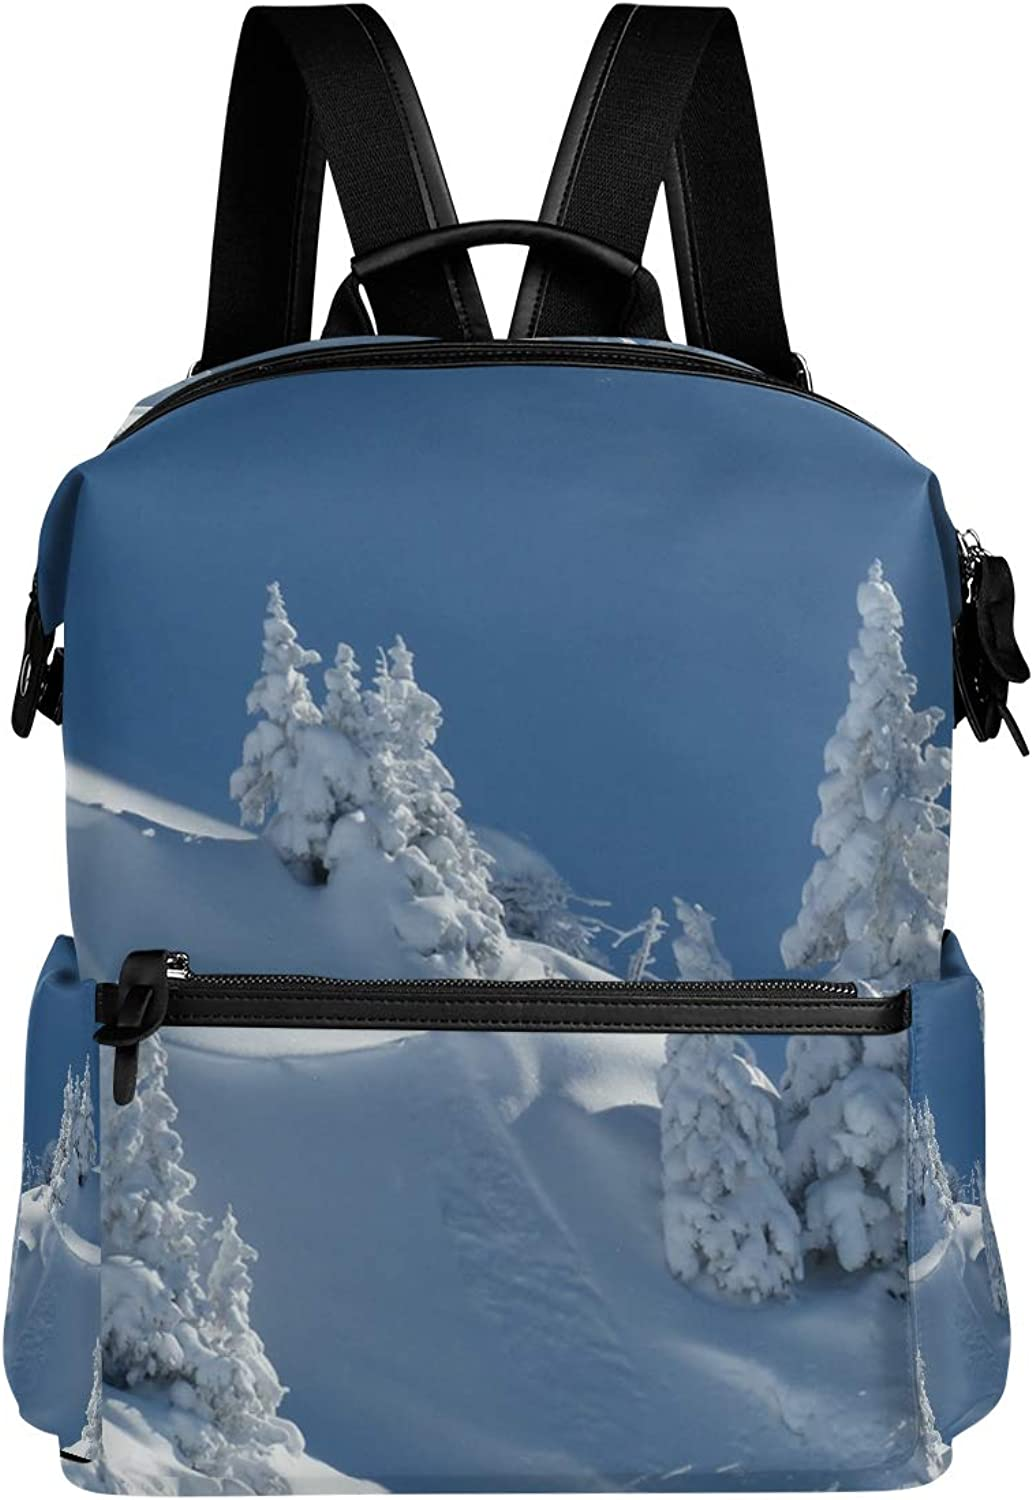 MONTOJ Wintry Mountain Trees Leather Travel Bag Campus Backpack